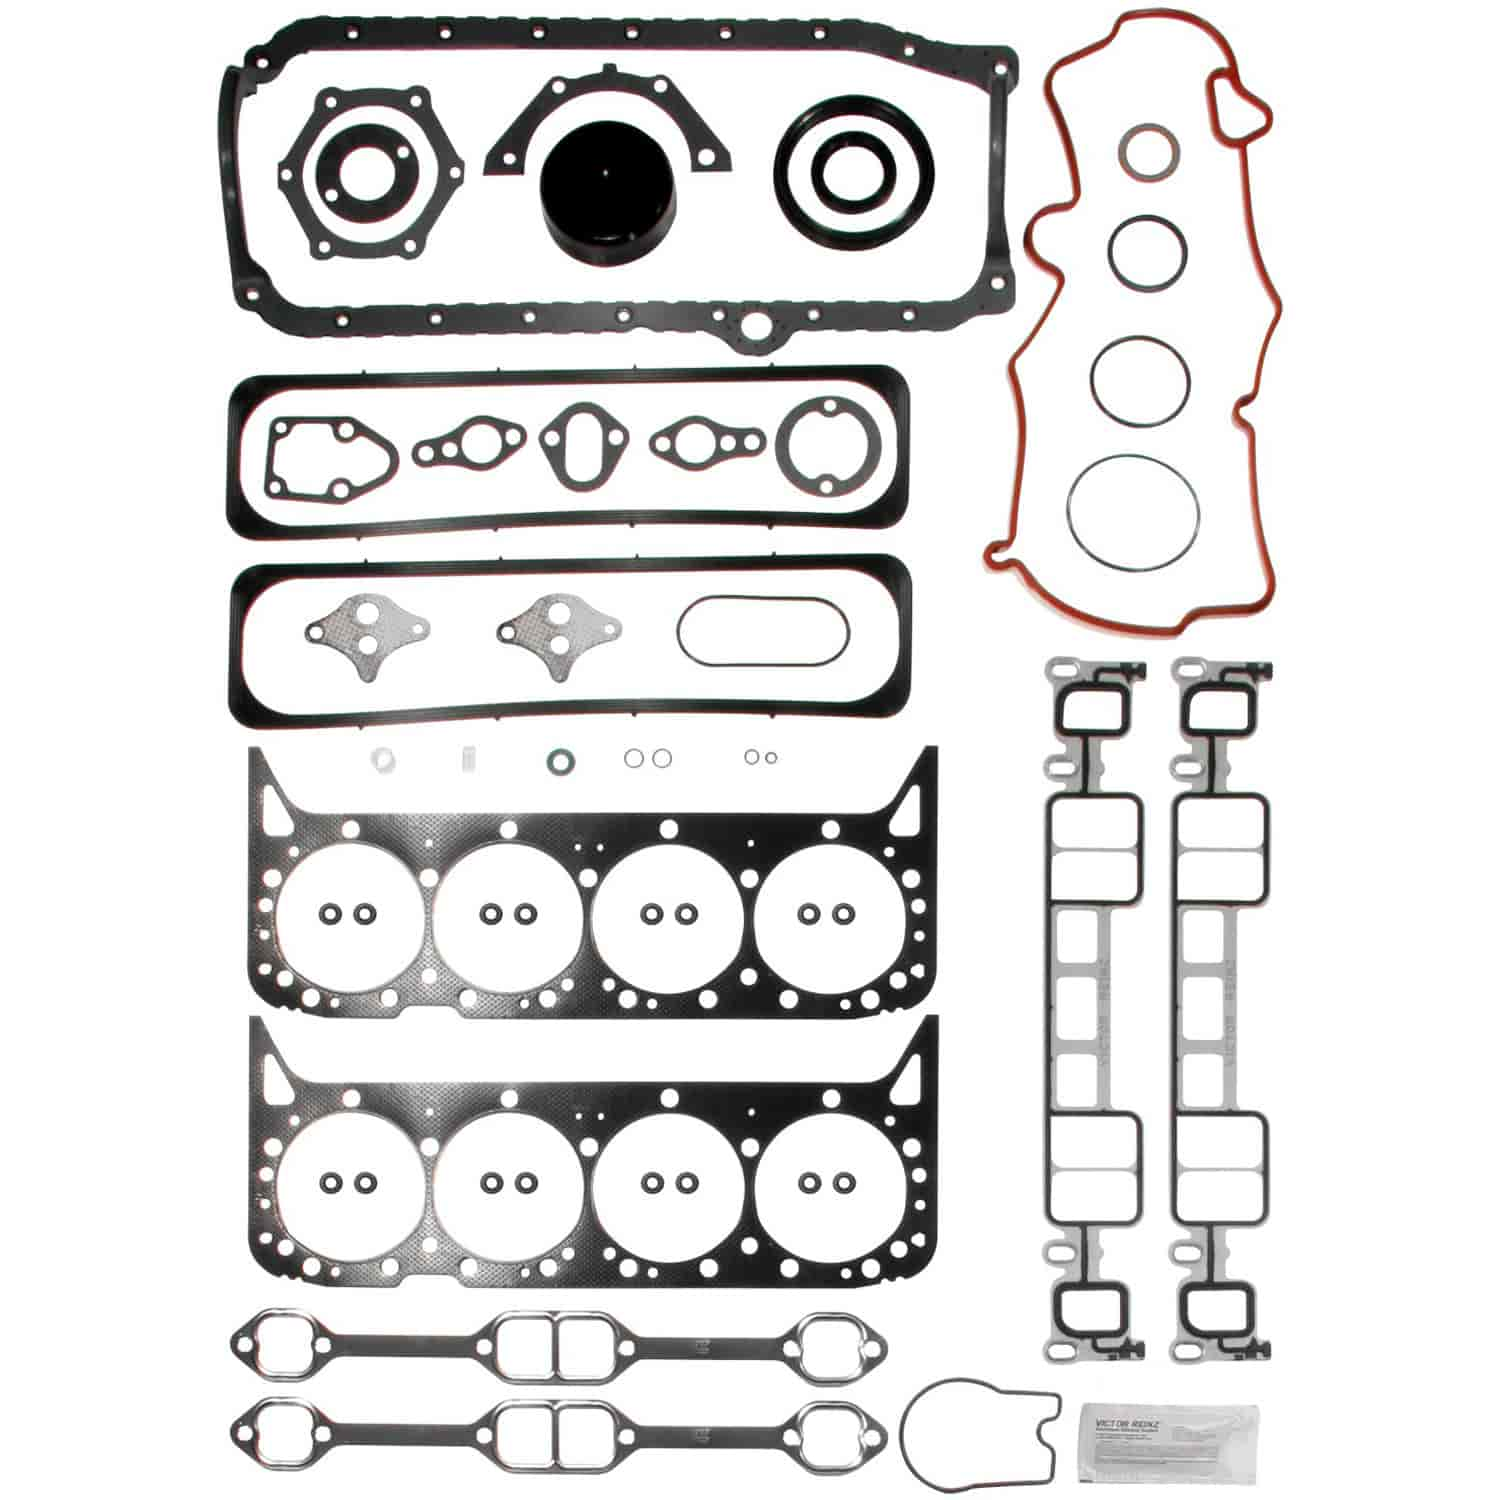 Top Alcohol Funny Car Chassis Kit OSCARItem 344 06 002 besides Dragster car drawing additionally Drag Car Wiring Diagram likewise Quarter Midget In Parts Accessories further 1. on jr dragster engine